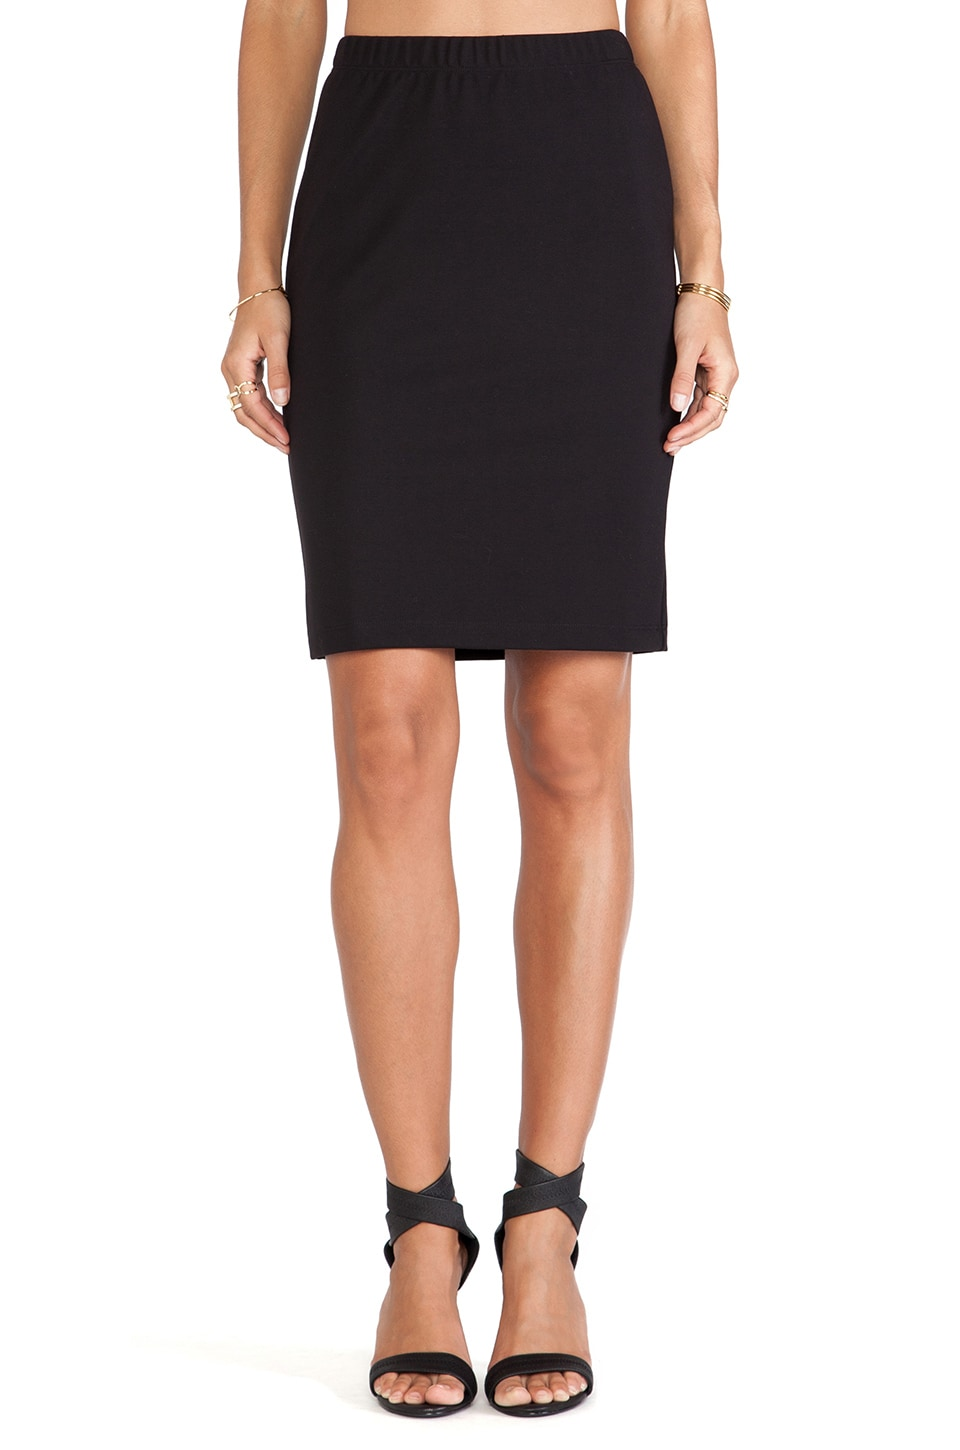 Velvet by Graham & Spencer Frisco Ponti Basic Skirt in Black